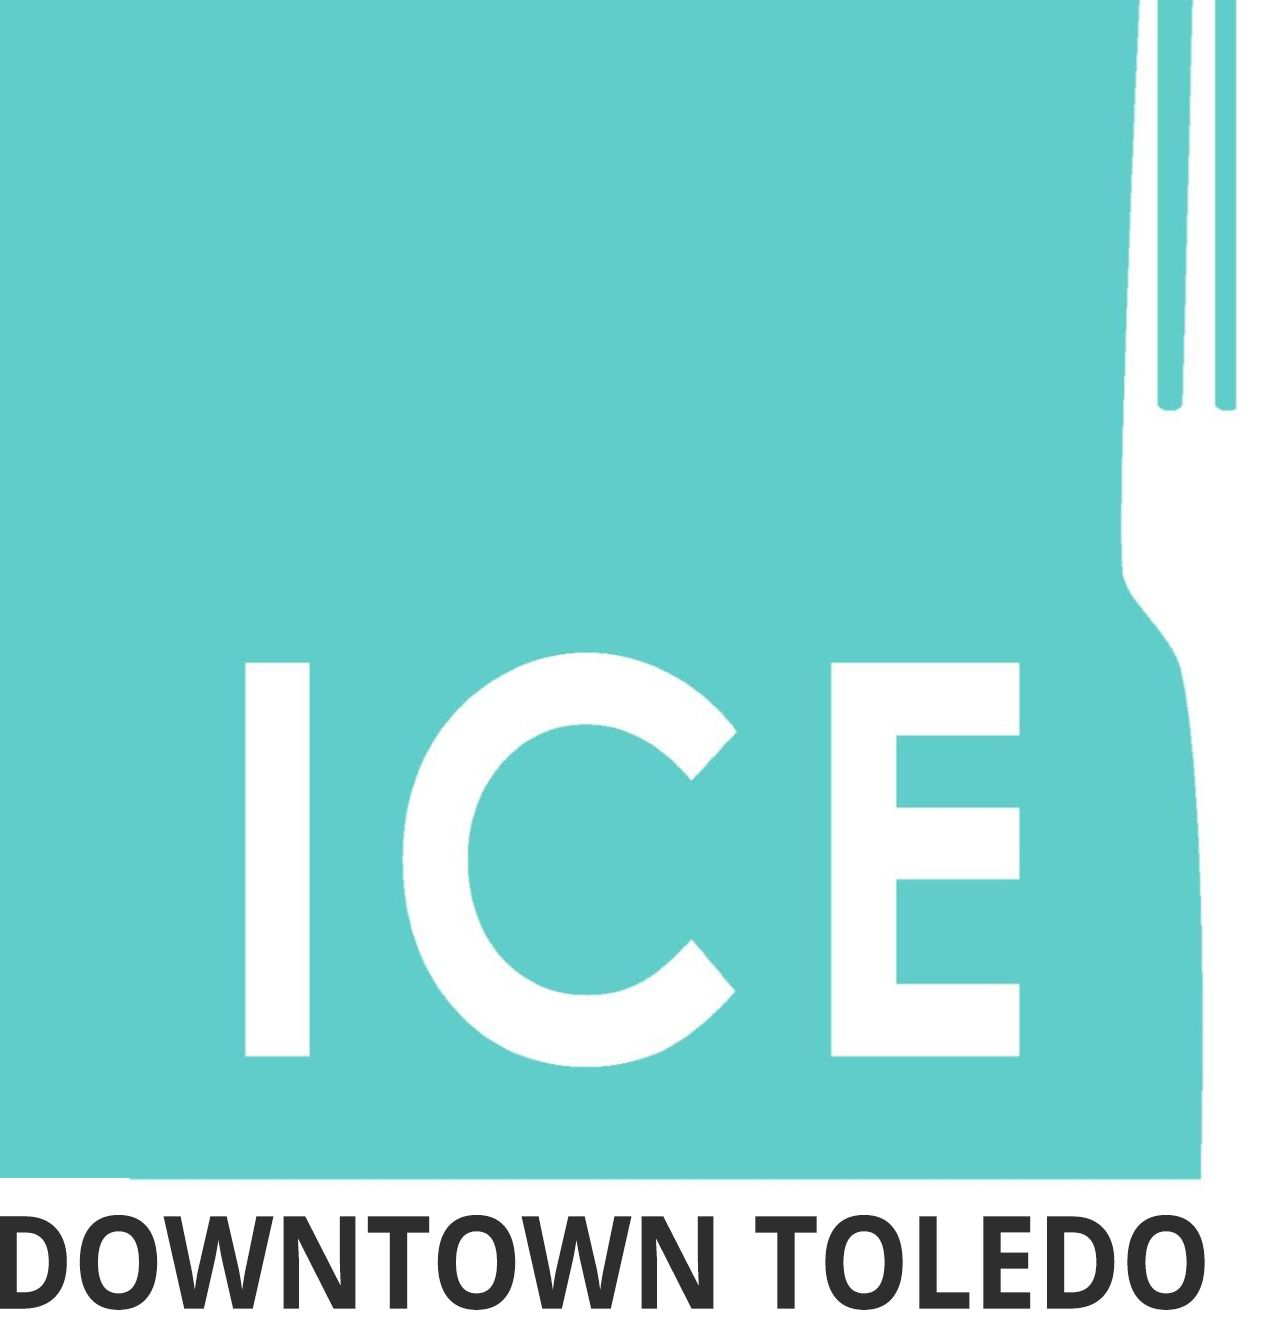 High Quality Dining In The Heart Of Downtown Toledo